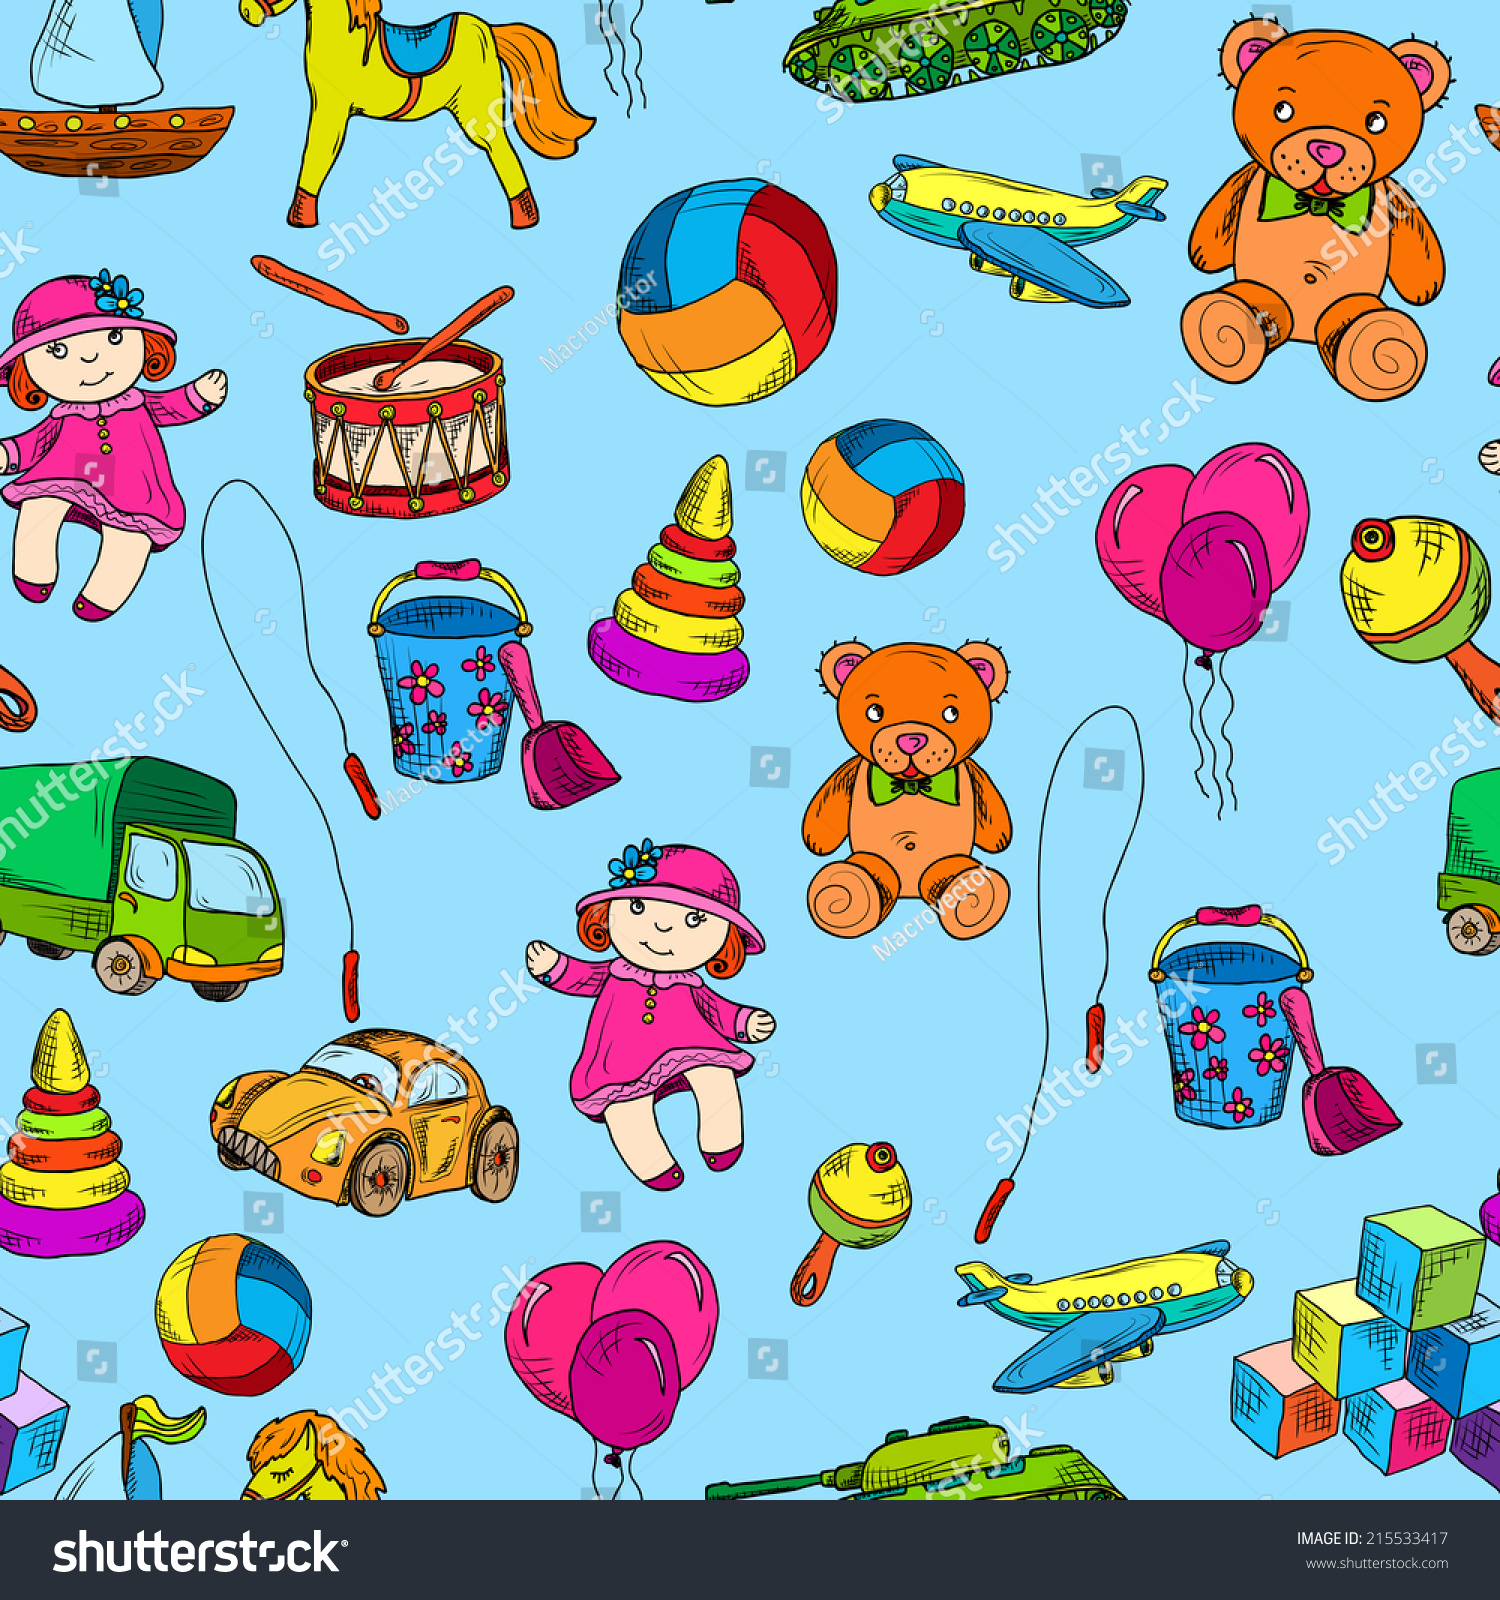 Vintage Kids Toys Sketch Colored Seamless Stock Vector